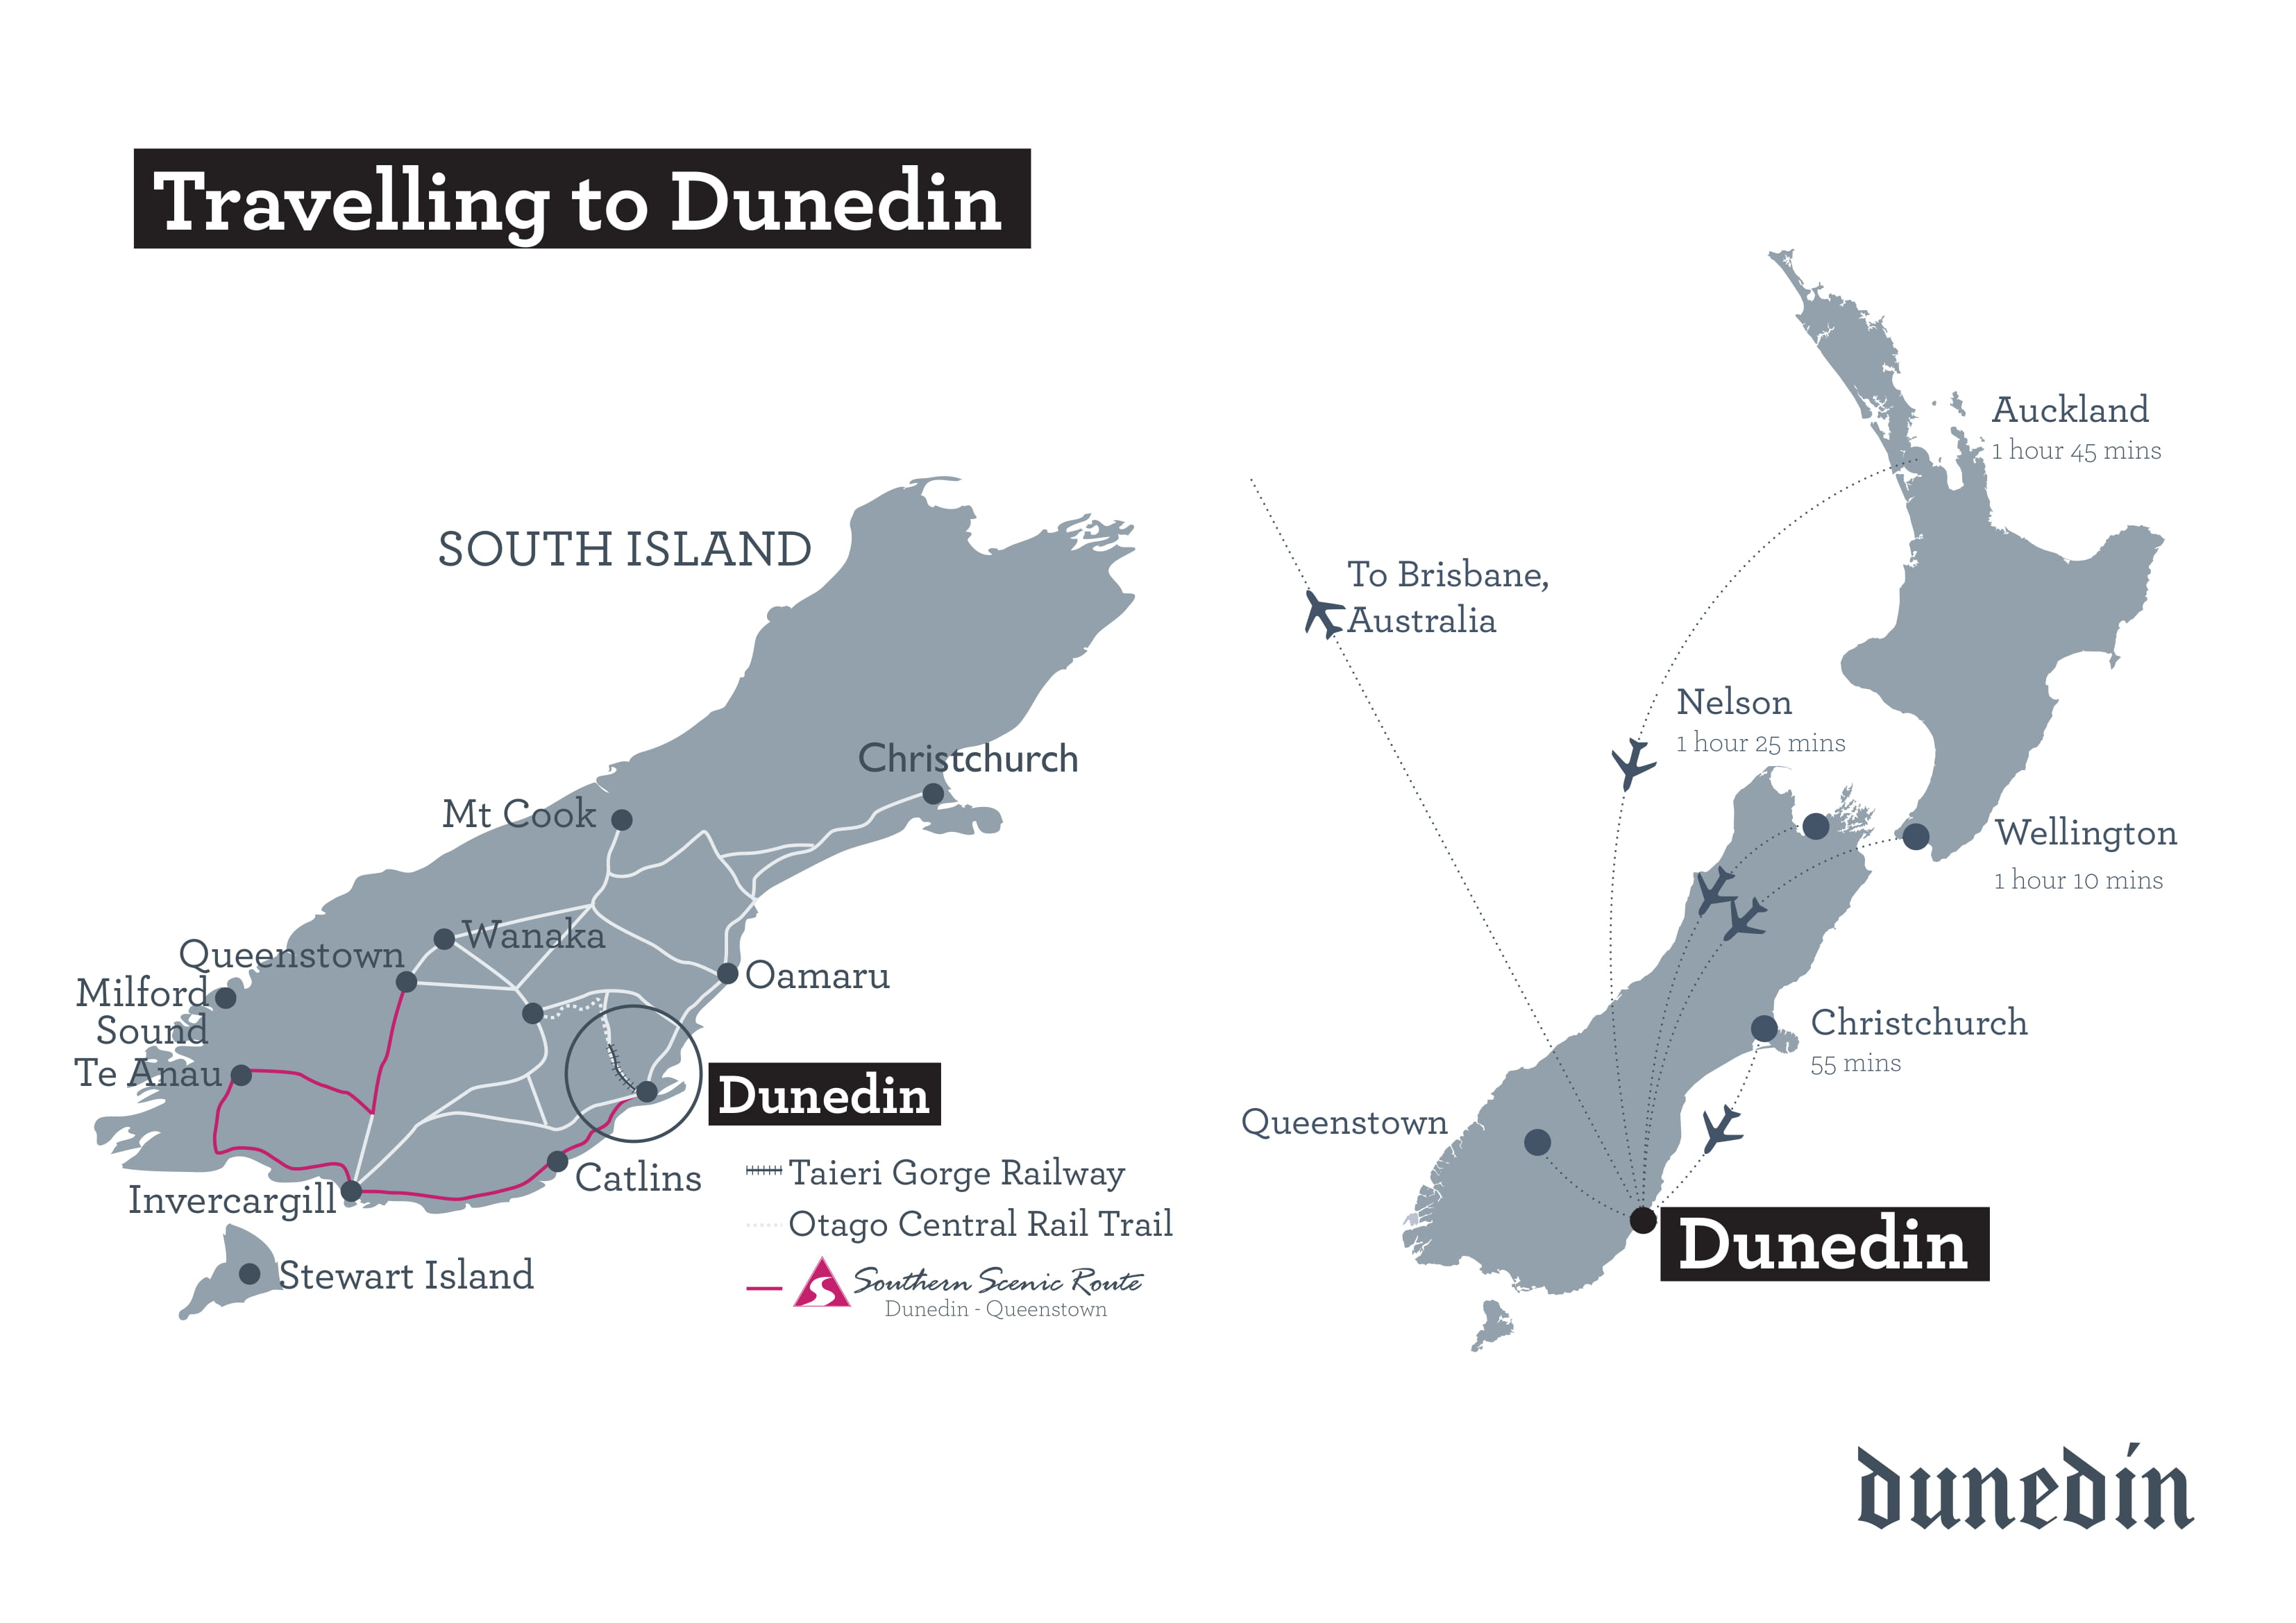 Travelling to Dunedin map